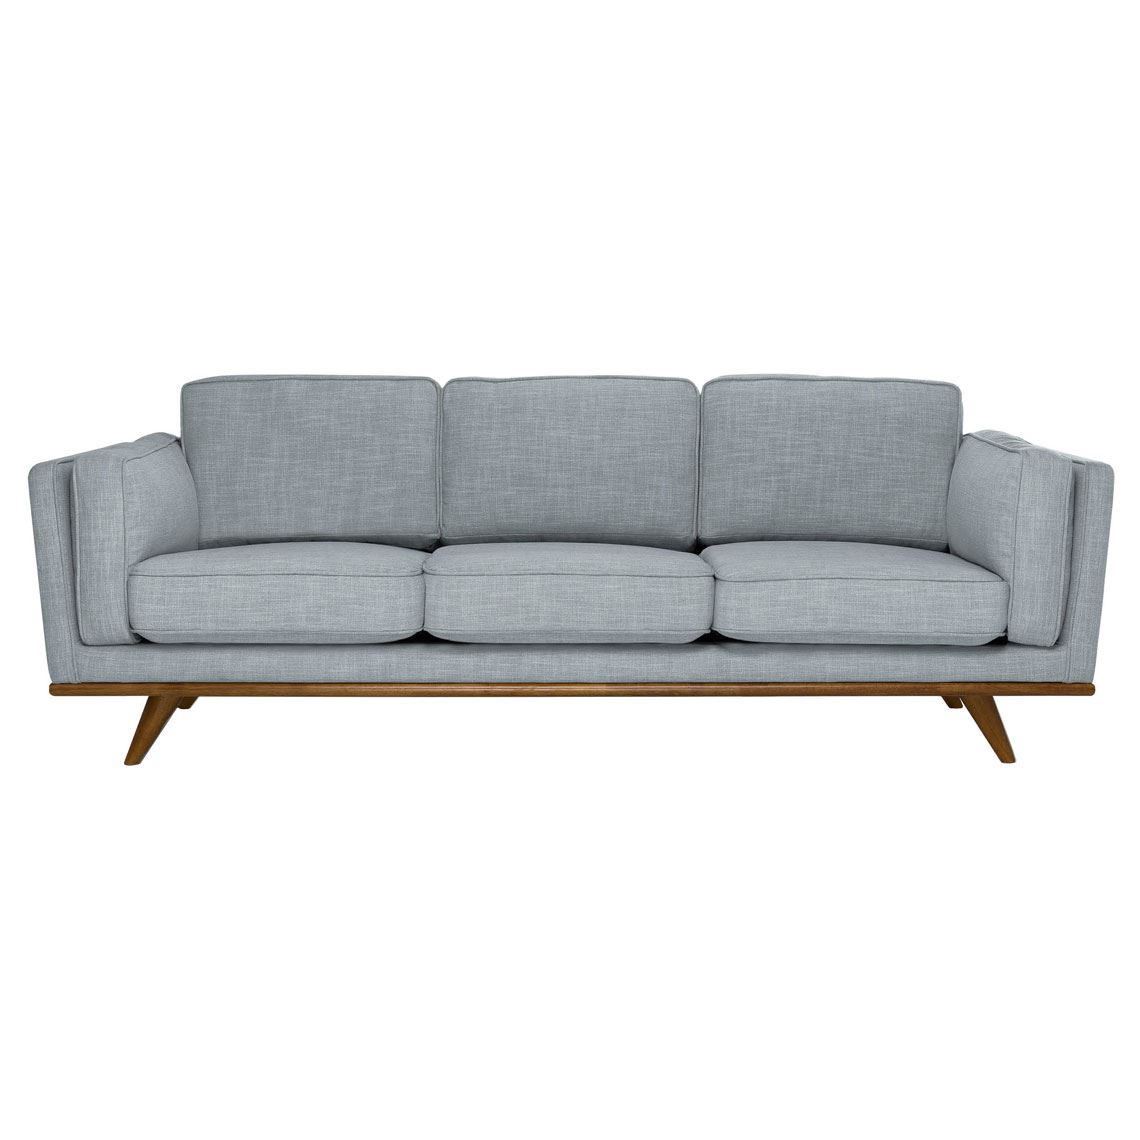 Dahlia 3 Seat Fabric Sofa Size W 229cm x D 93cm x H 82cm in Light Grey 90% Polyester/10% Linen/Woven Freedom by Freedom, a Sofas for sale on Style Sourcebook